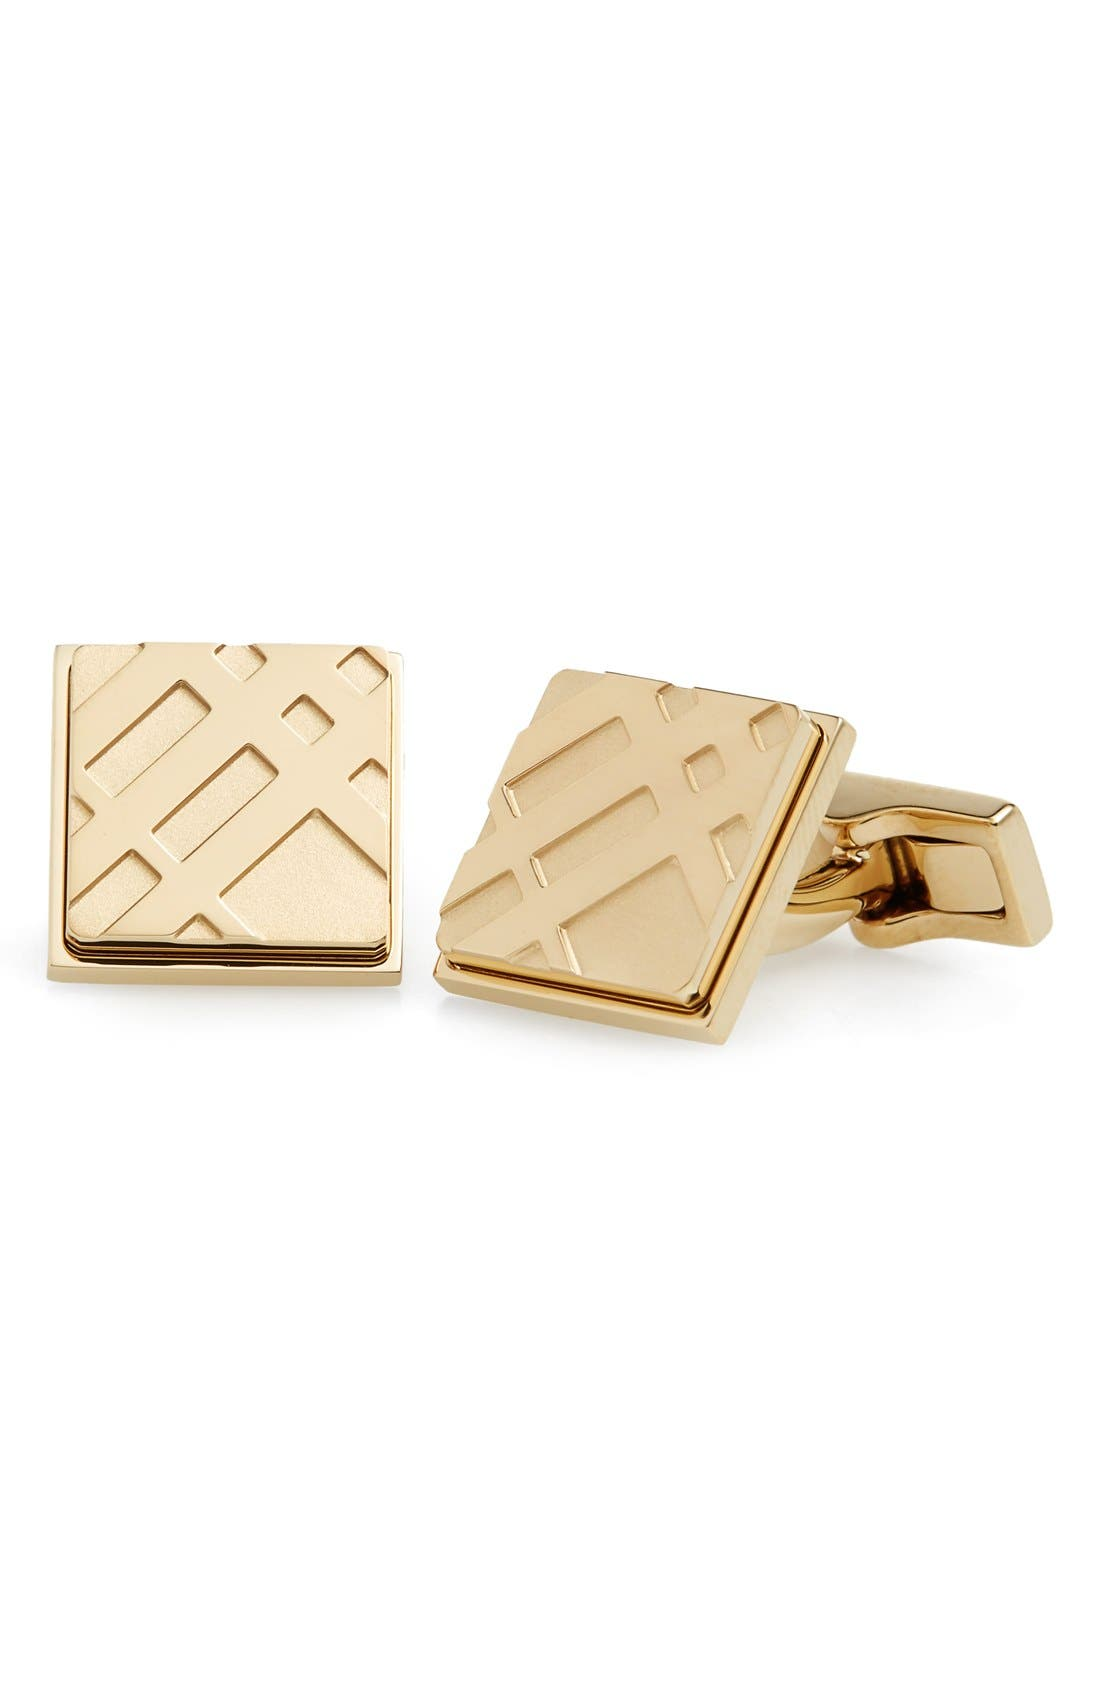 Square Cuff Links,                             Main thumbnail 1, color,                             714